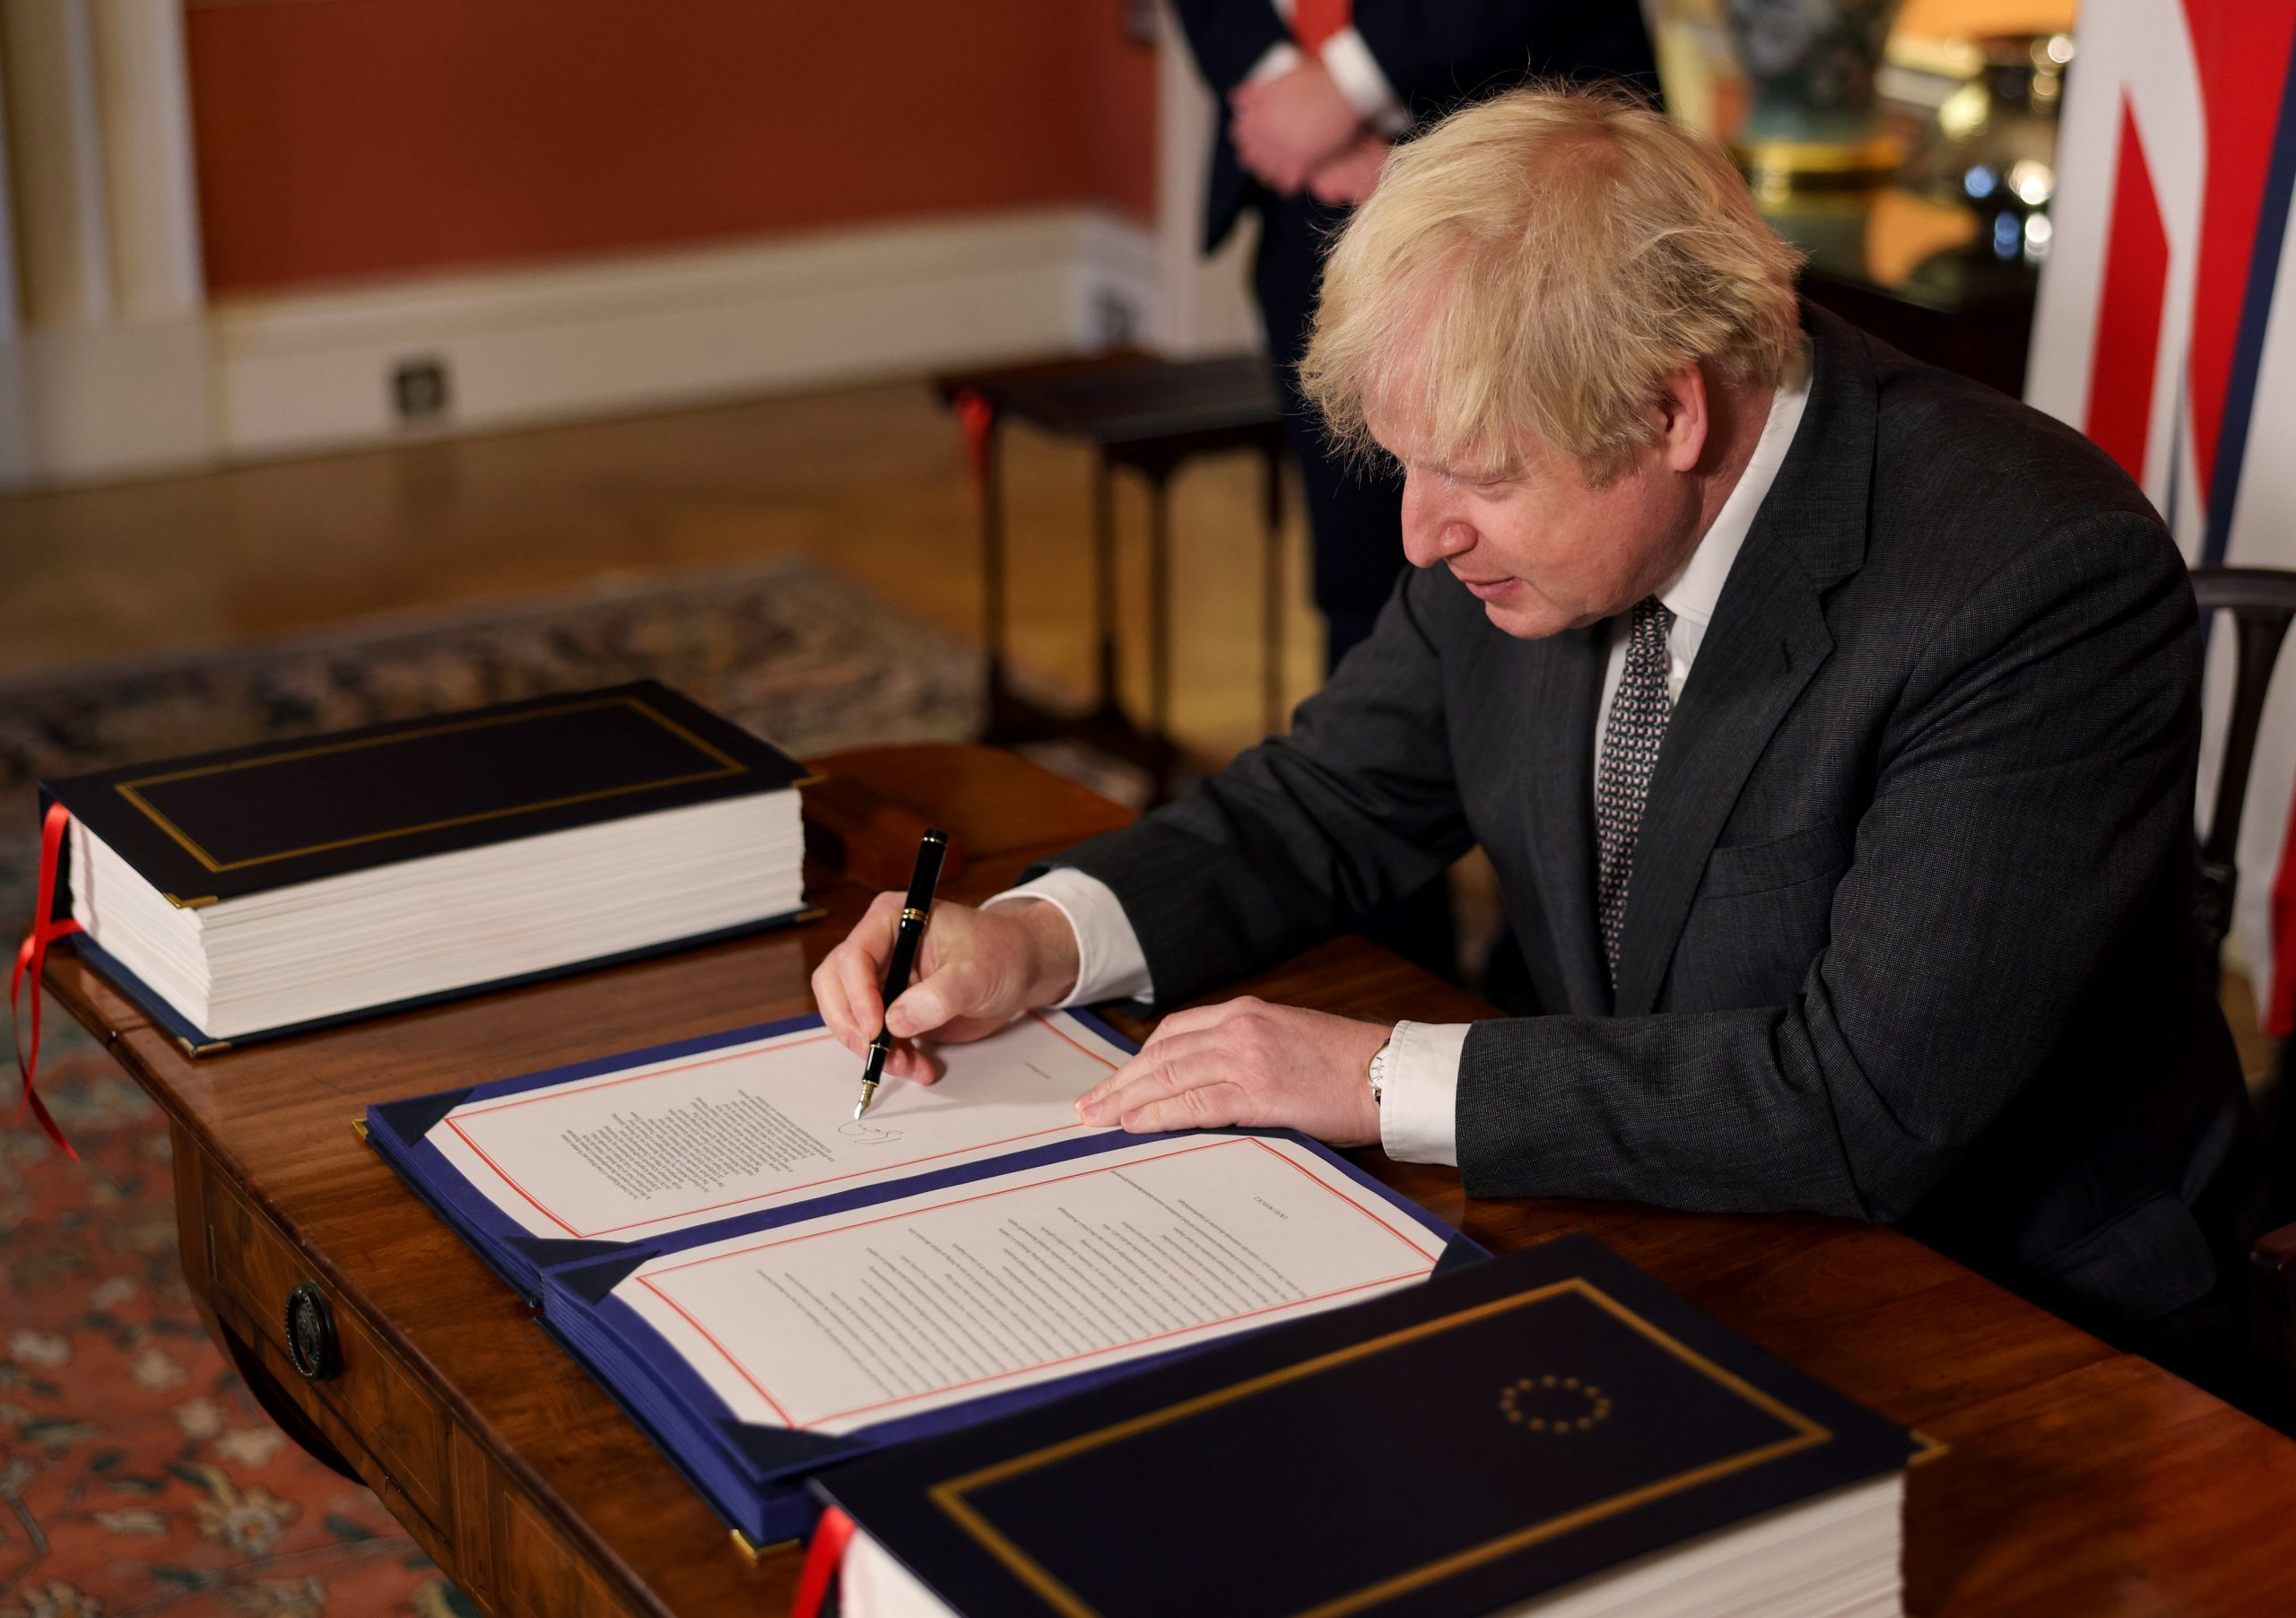 UK Prime Minister Boris Johnson has signed the post-Brexit trade deal with the European Union as the Scottish Parliament votes to reject it